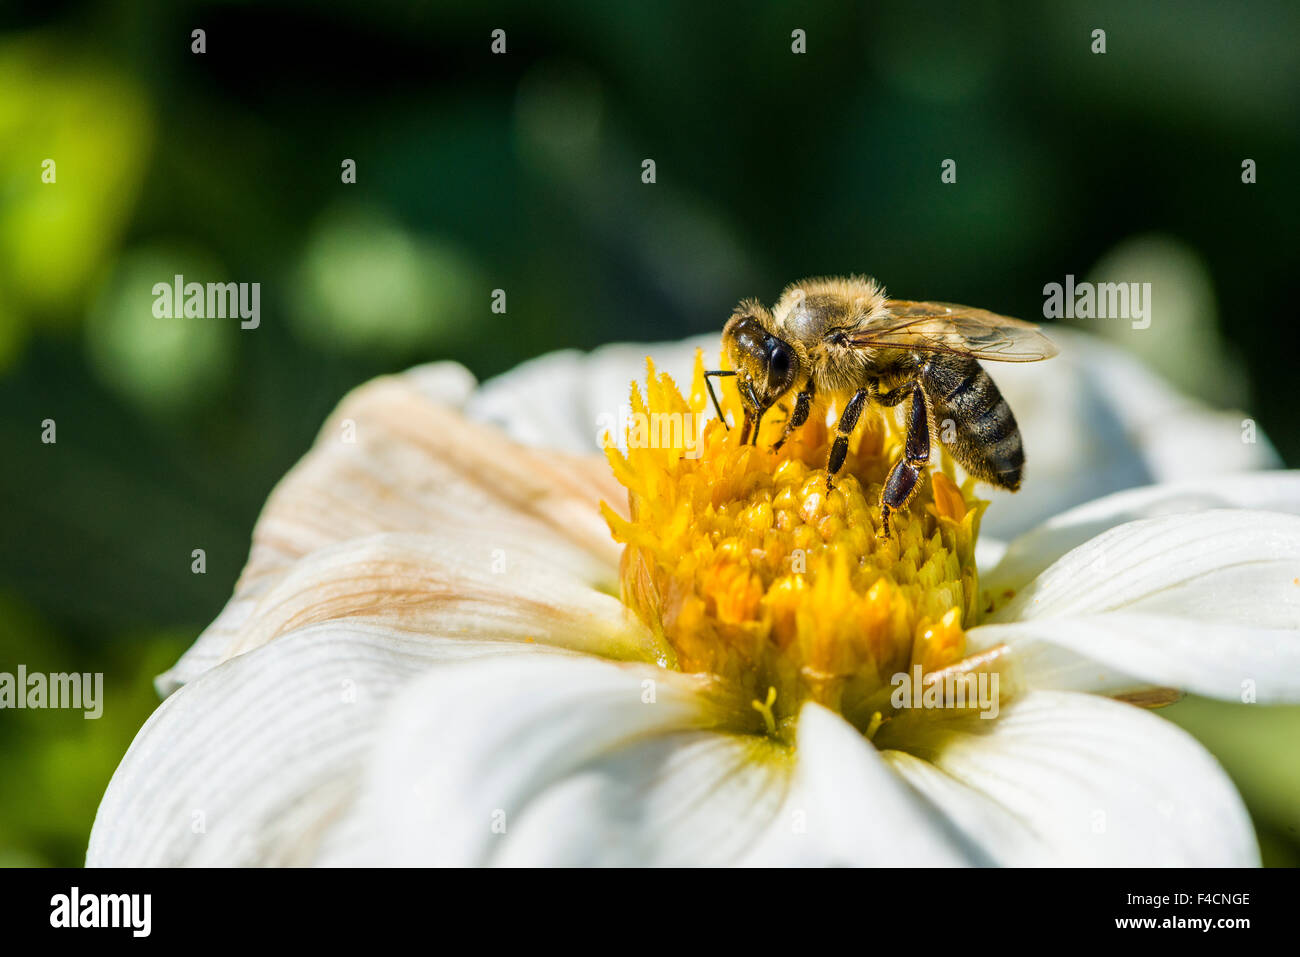 A Carniolan honey bee (Apis mellifera carnica) is collecting nectar from a Dahlia (Asteraceae) blossom - Stock Image